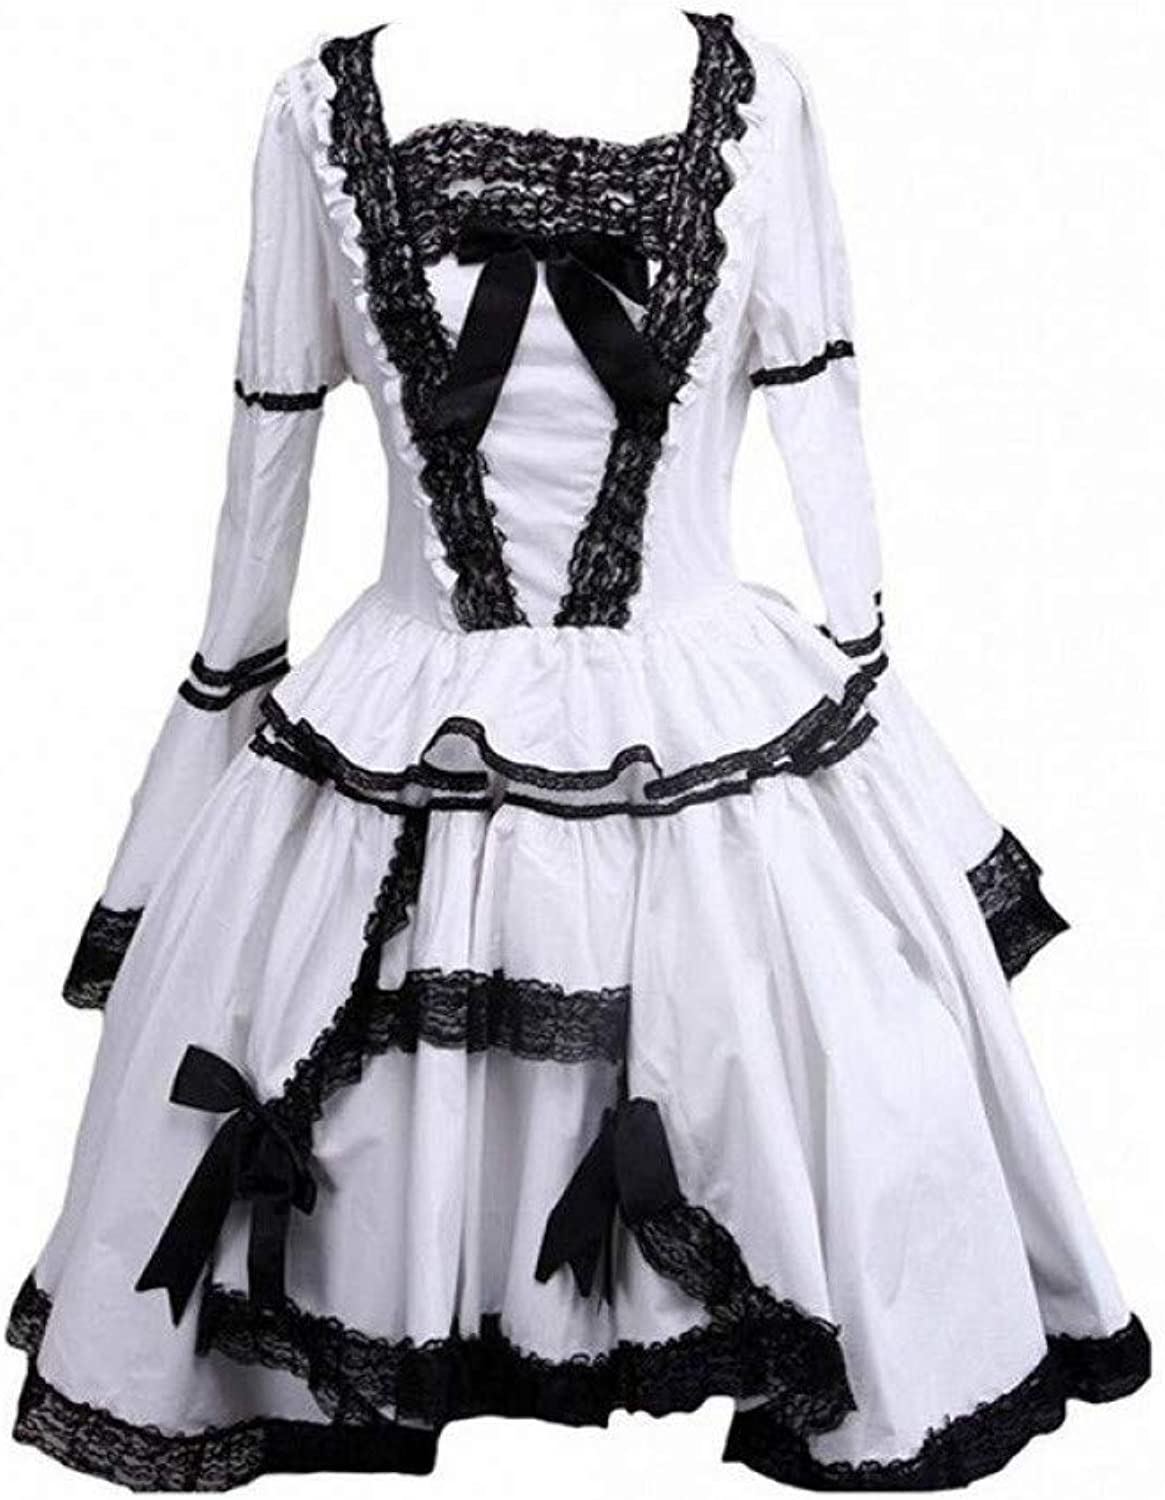 QAQBDBCKL Middle-Long Dress Womens Black And White Lace Trimmed Gothic A-Line Lolita Cosplay Dress For Casual Party Halloween